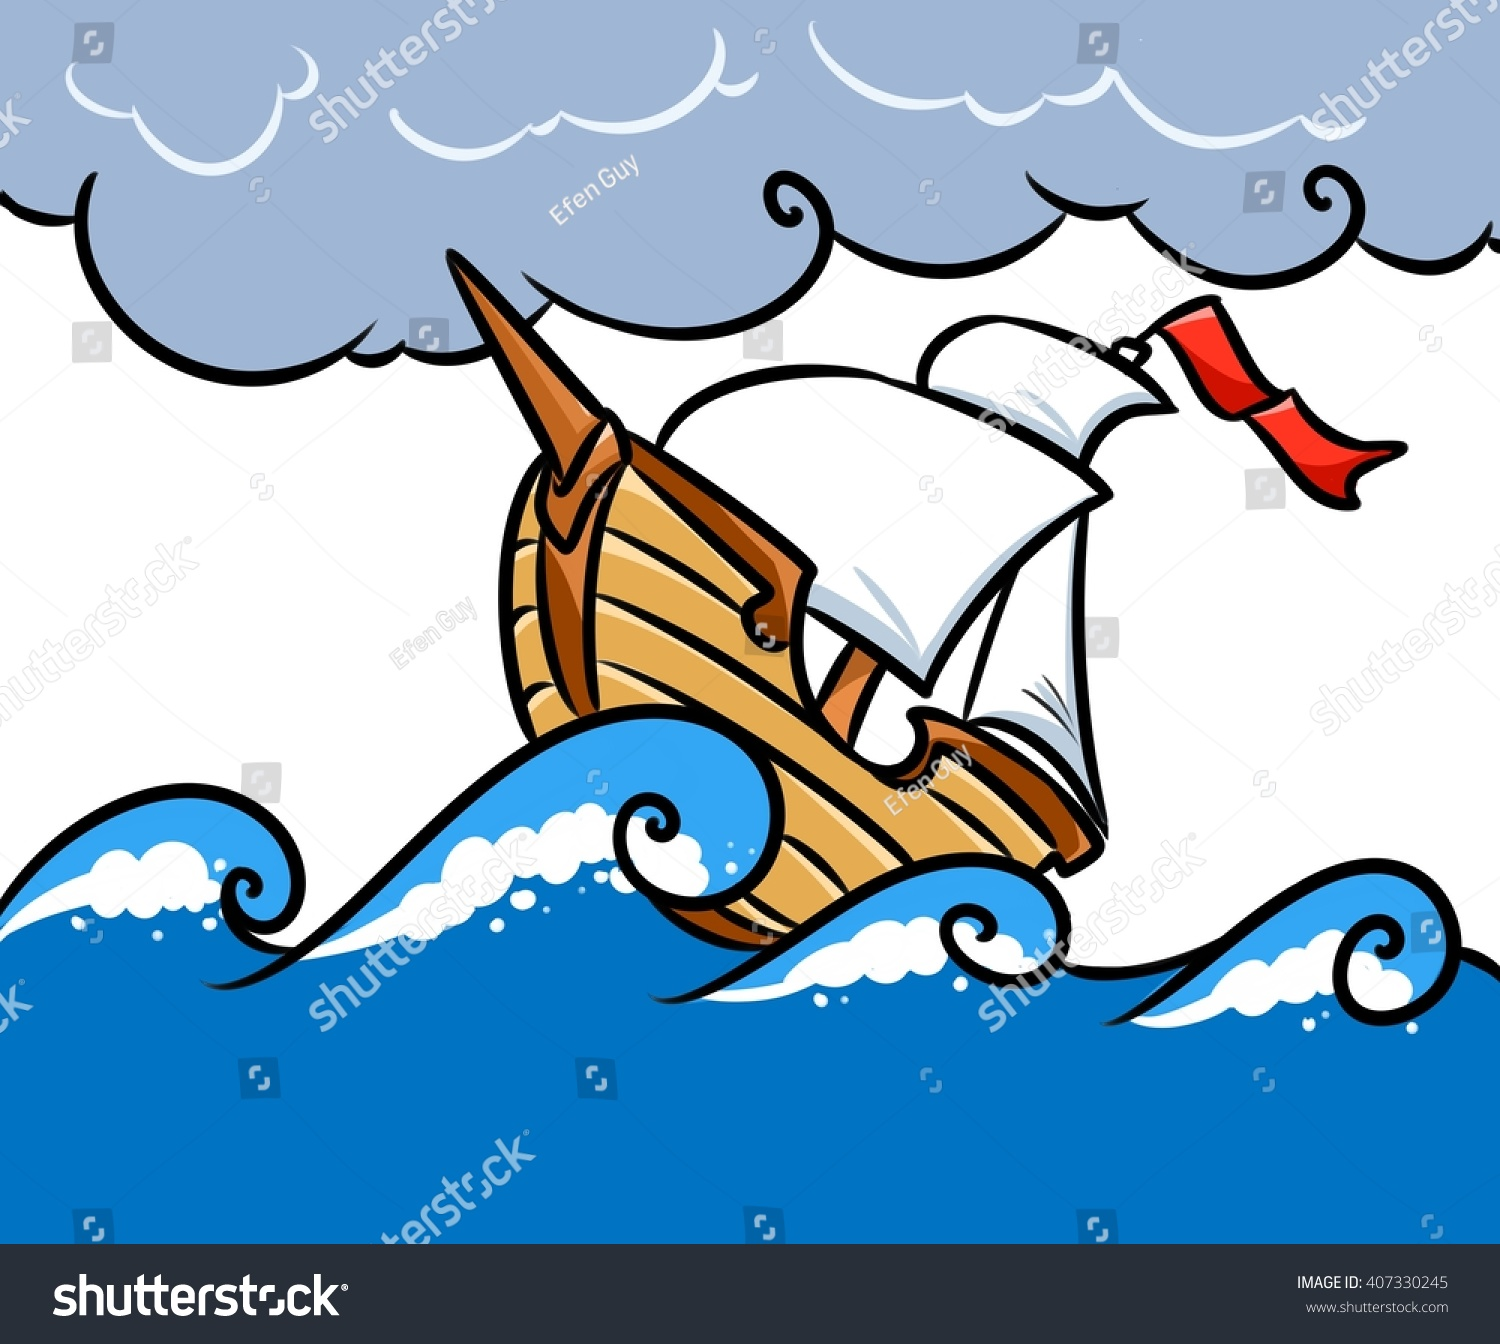 storm ship sea cartoon illustration stock illustration sailfish clip art that is not a square picture sailfish clipart black and white